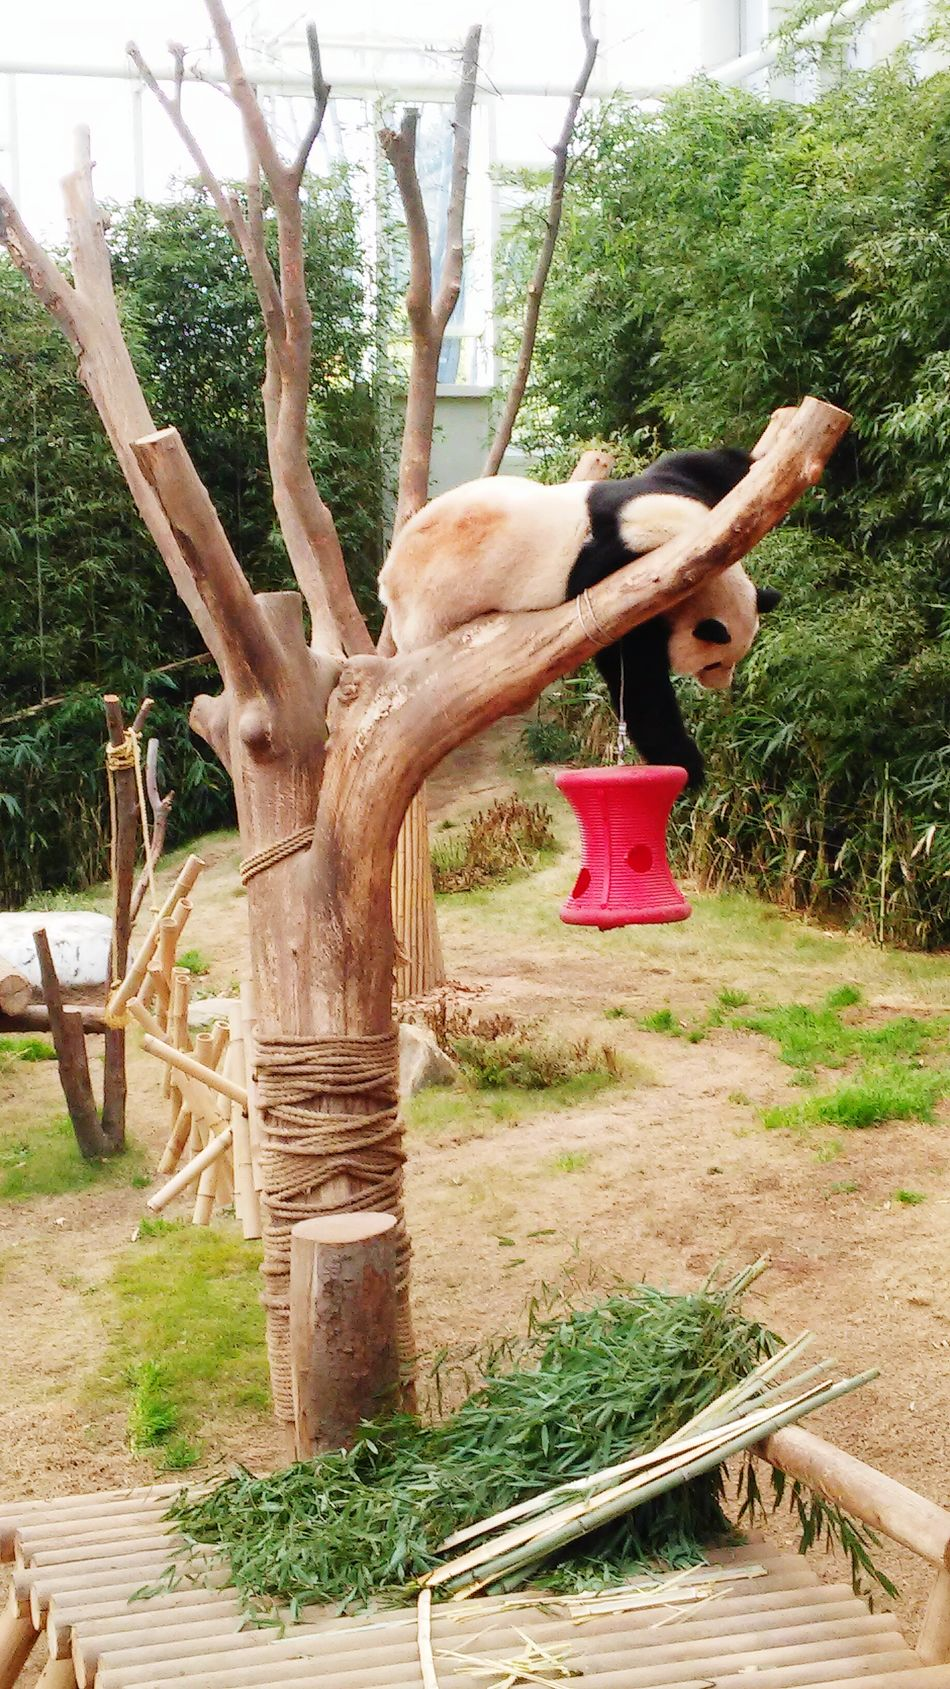 One Animal Tree Panda Animal Themes PANDA ♡♡ Pandashots Sleepyhead Tired! Sleepalldaysleepallnight Sleepanyposition